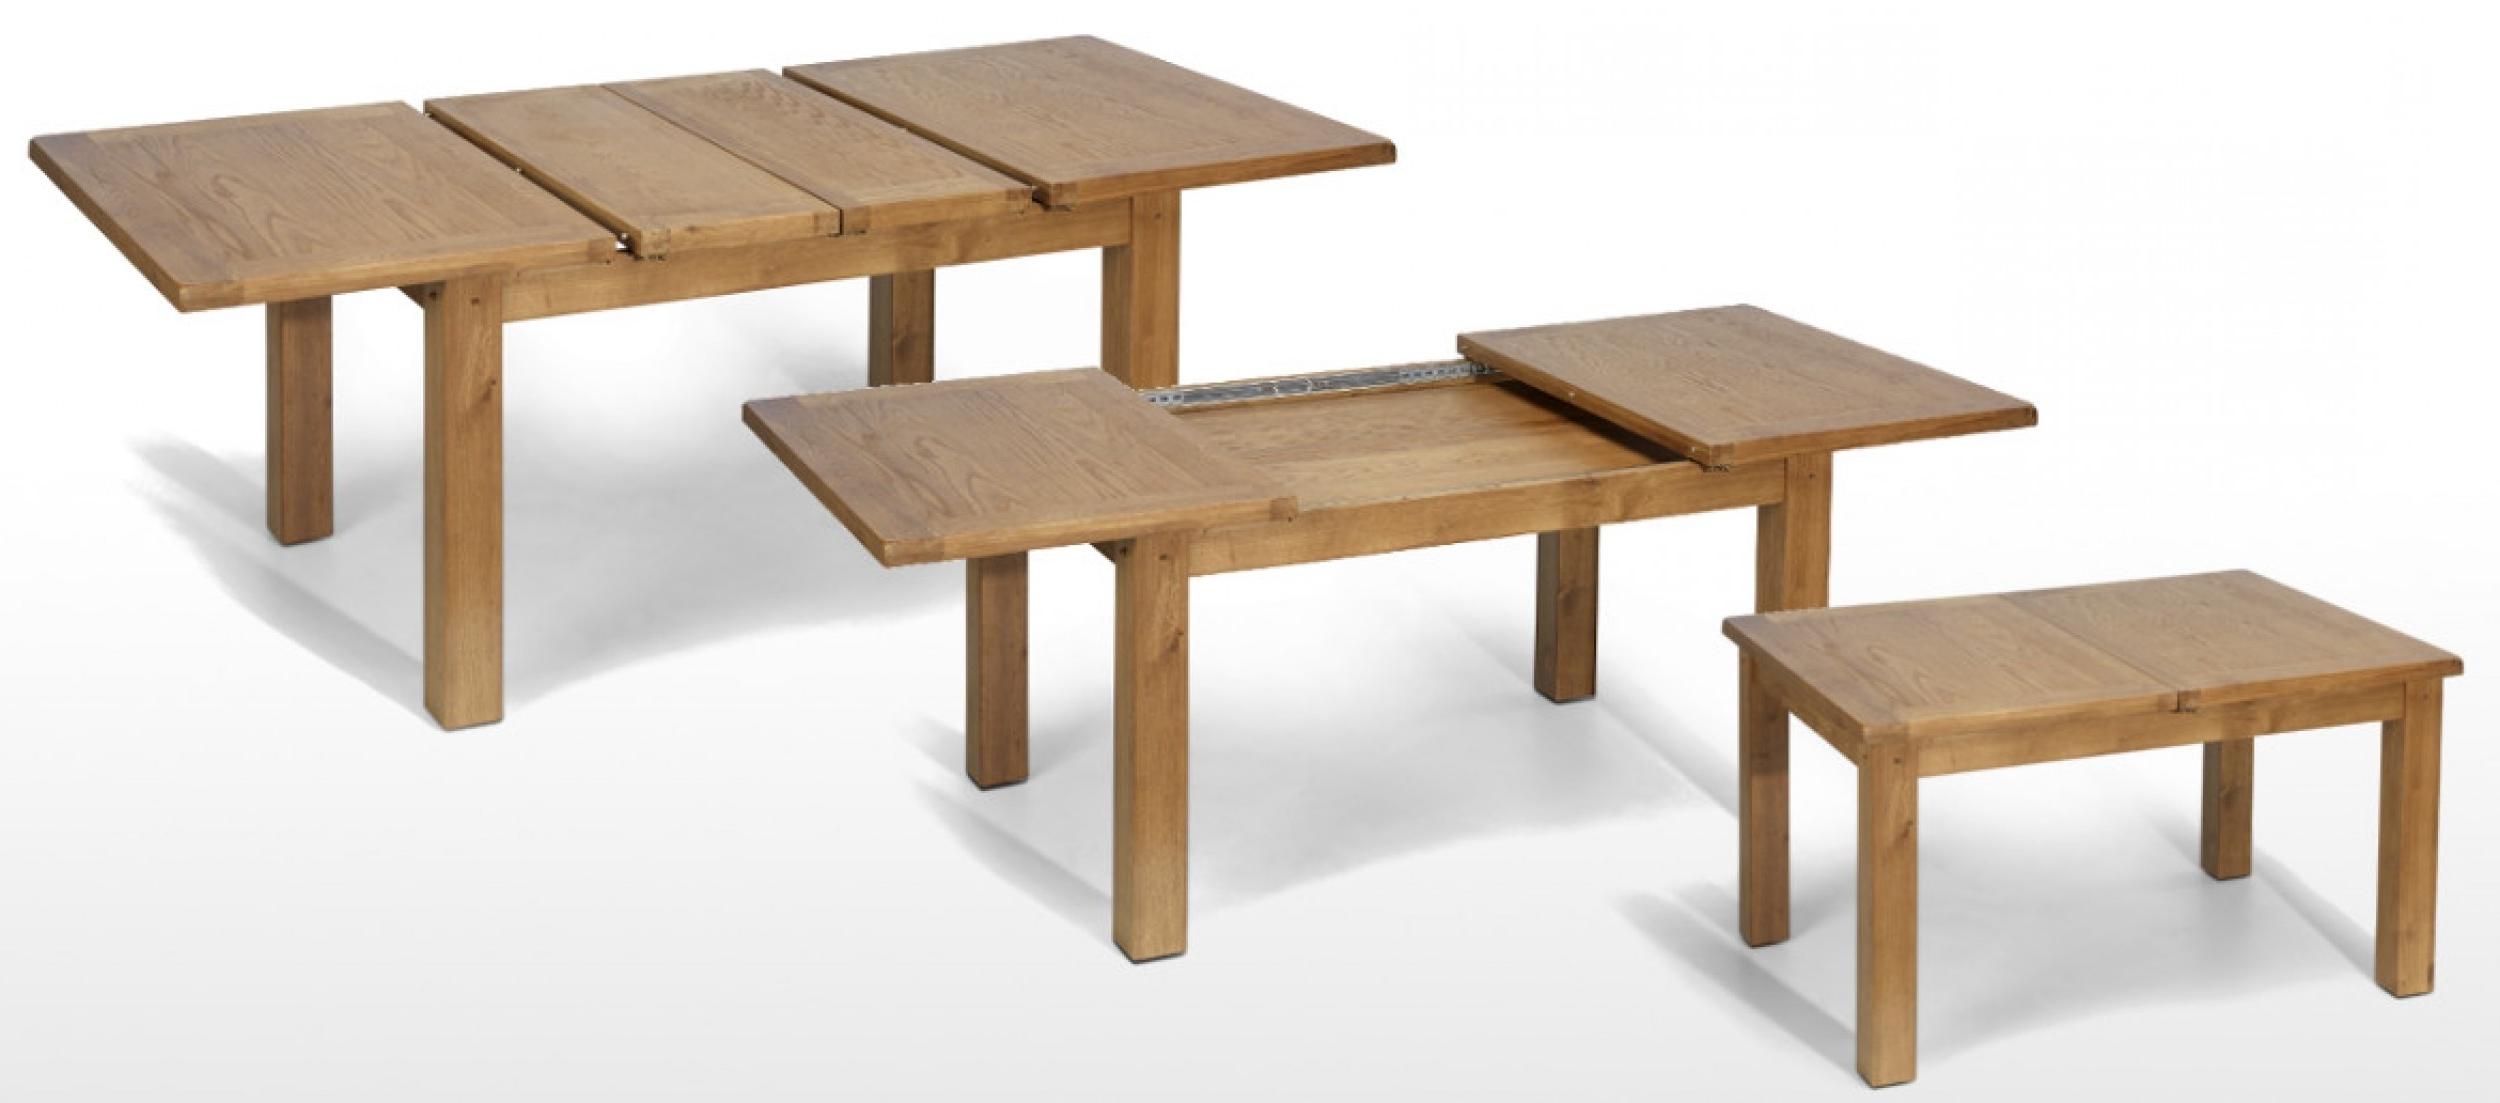 Quercus With Regard To Most Current Dining Extending Tables And Chairs (View 23 of 25)